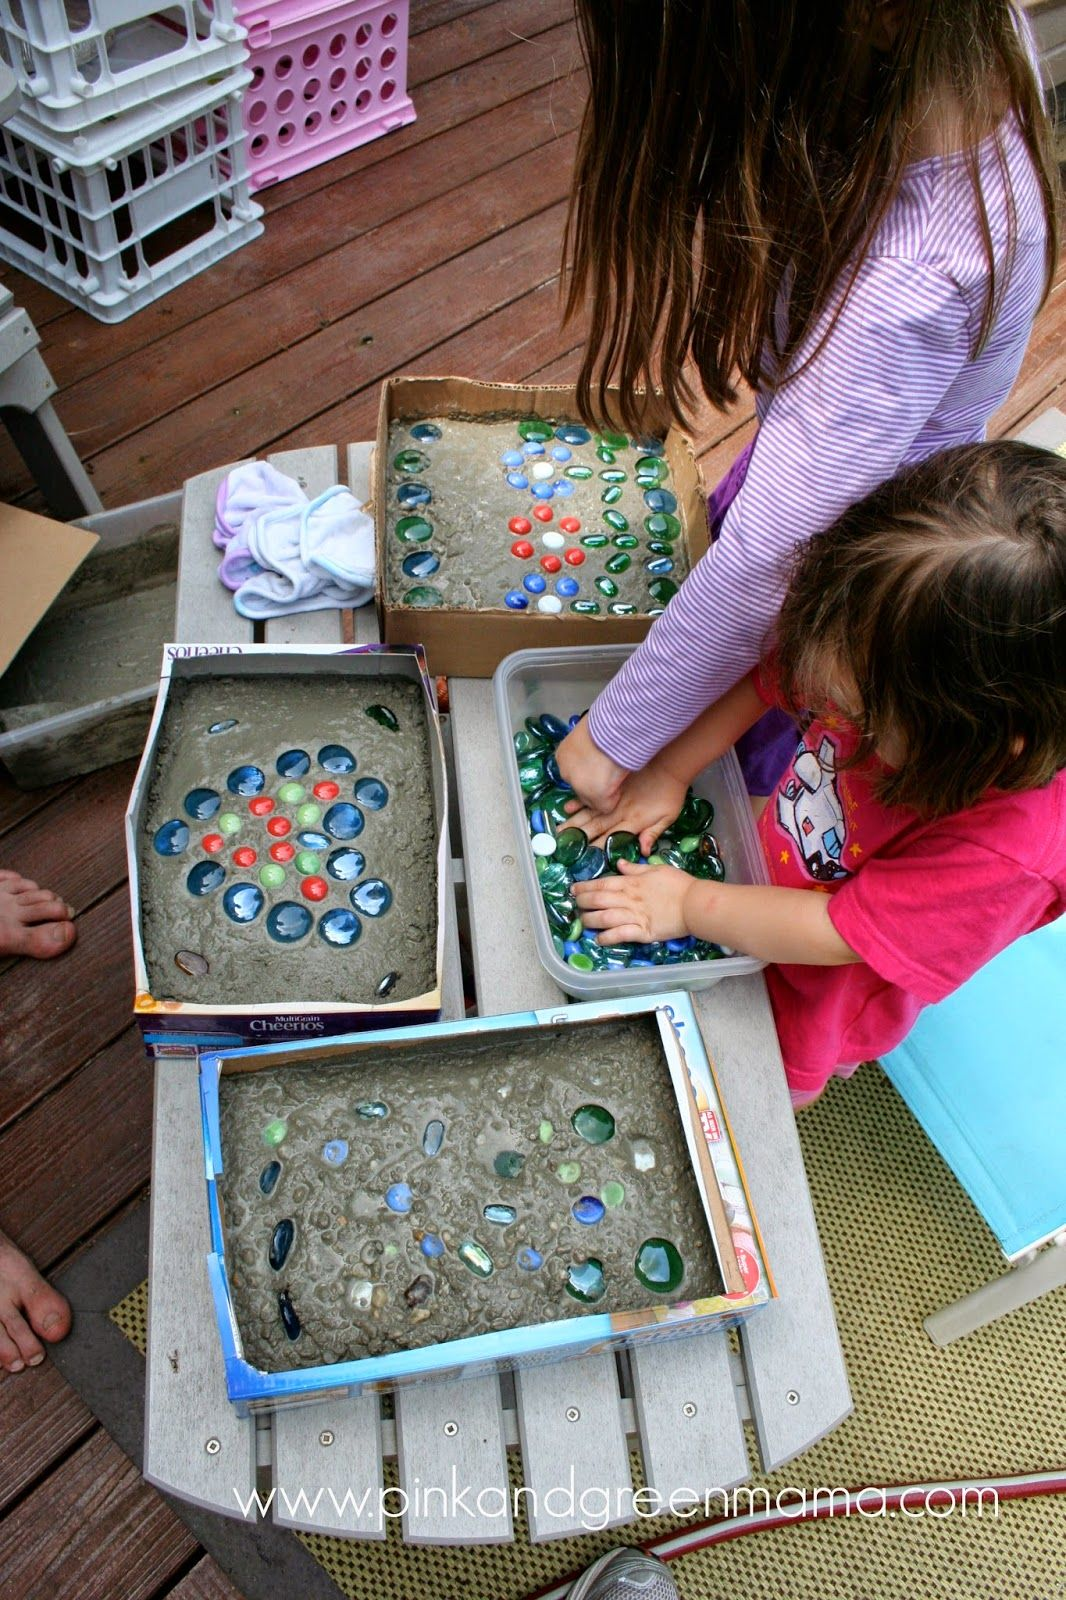 Superbe Kid Friendly Project: Cement Stepping Stones For Your Yard. Use Empty  Cereal Boxes, Cement, And Glass Stones To Make Your Own Garden Stepping  Stones!